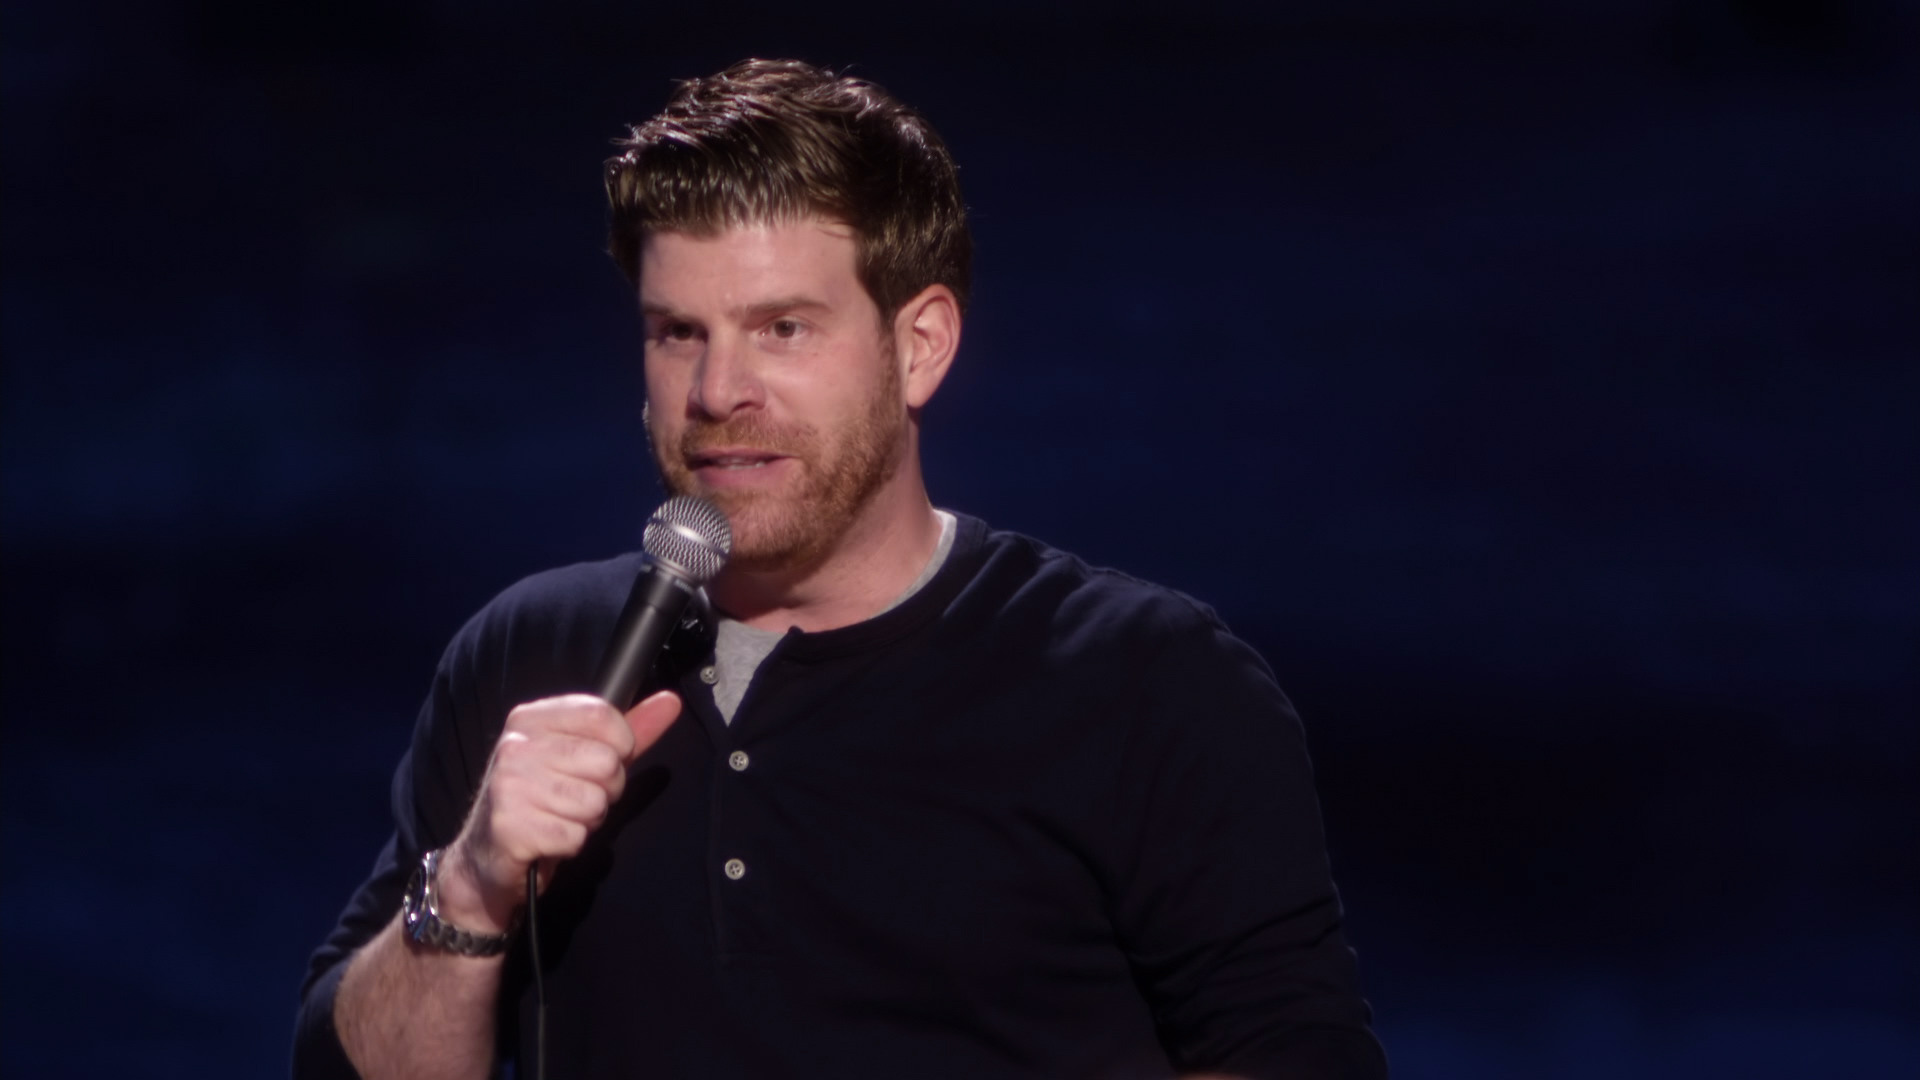 Uncensored - Steve Rannazzisi - Little Boys vs. Little Girls